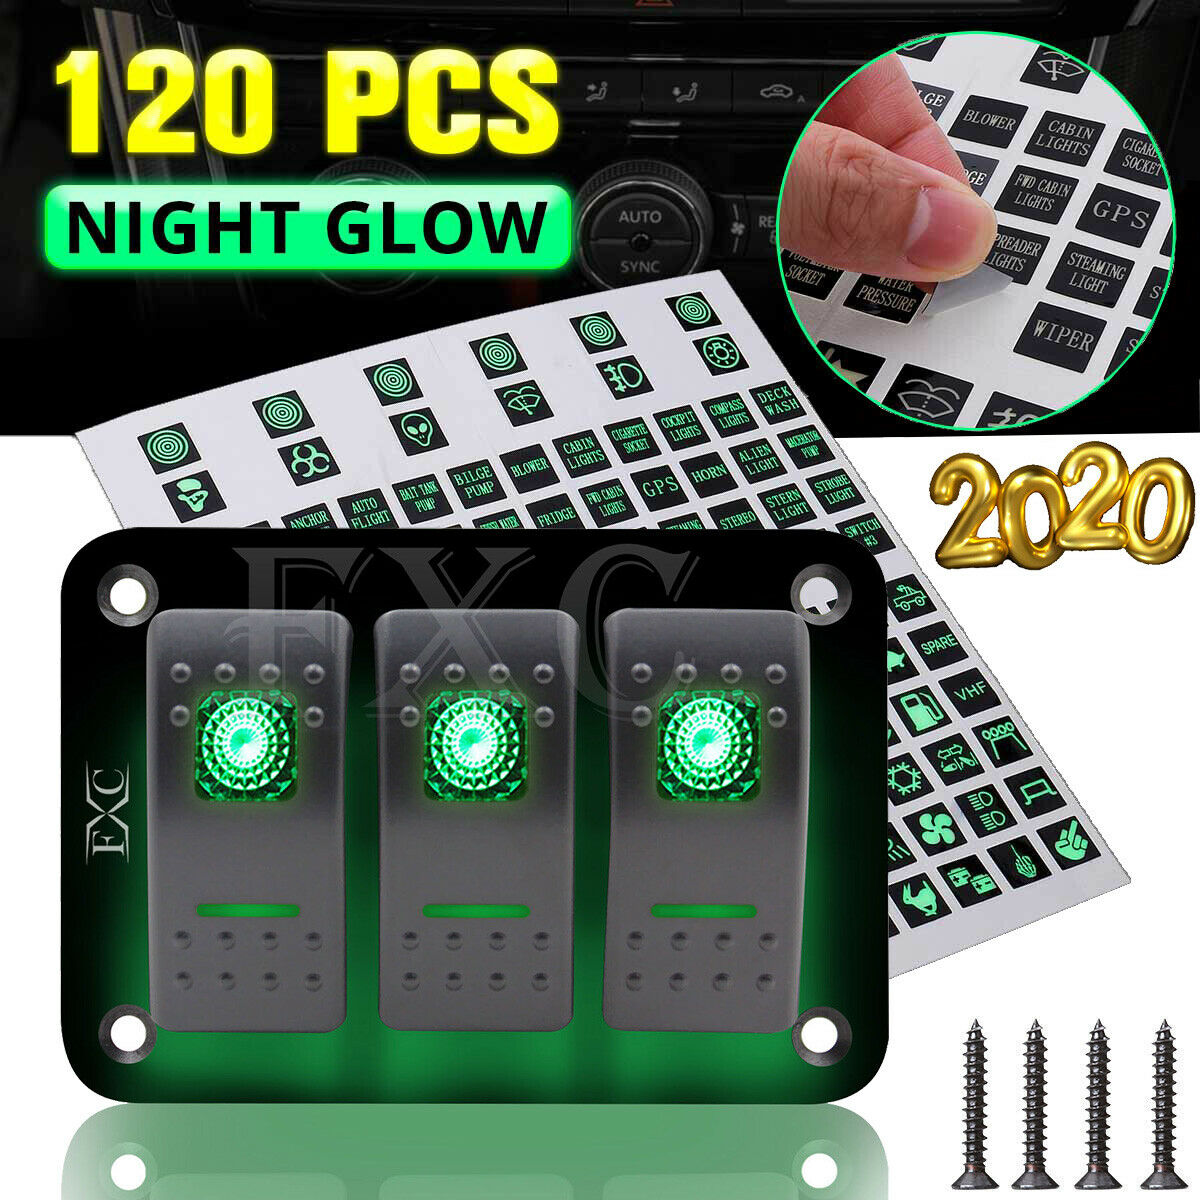 3 Gang Aluminium Led Rocker Switch Control Panel Circuit Breaker Car Boat Marine 4 Switches Ebay 1 Of 10free Shipping See More